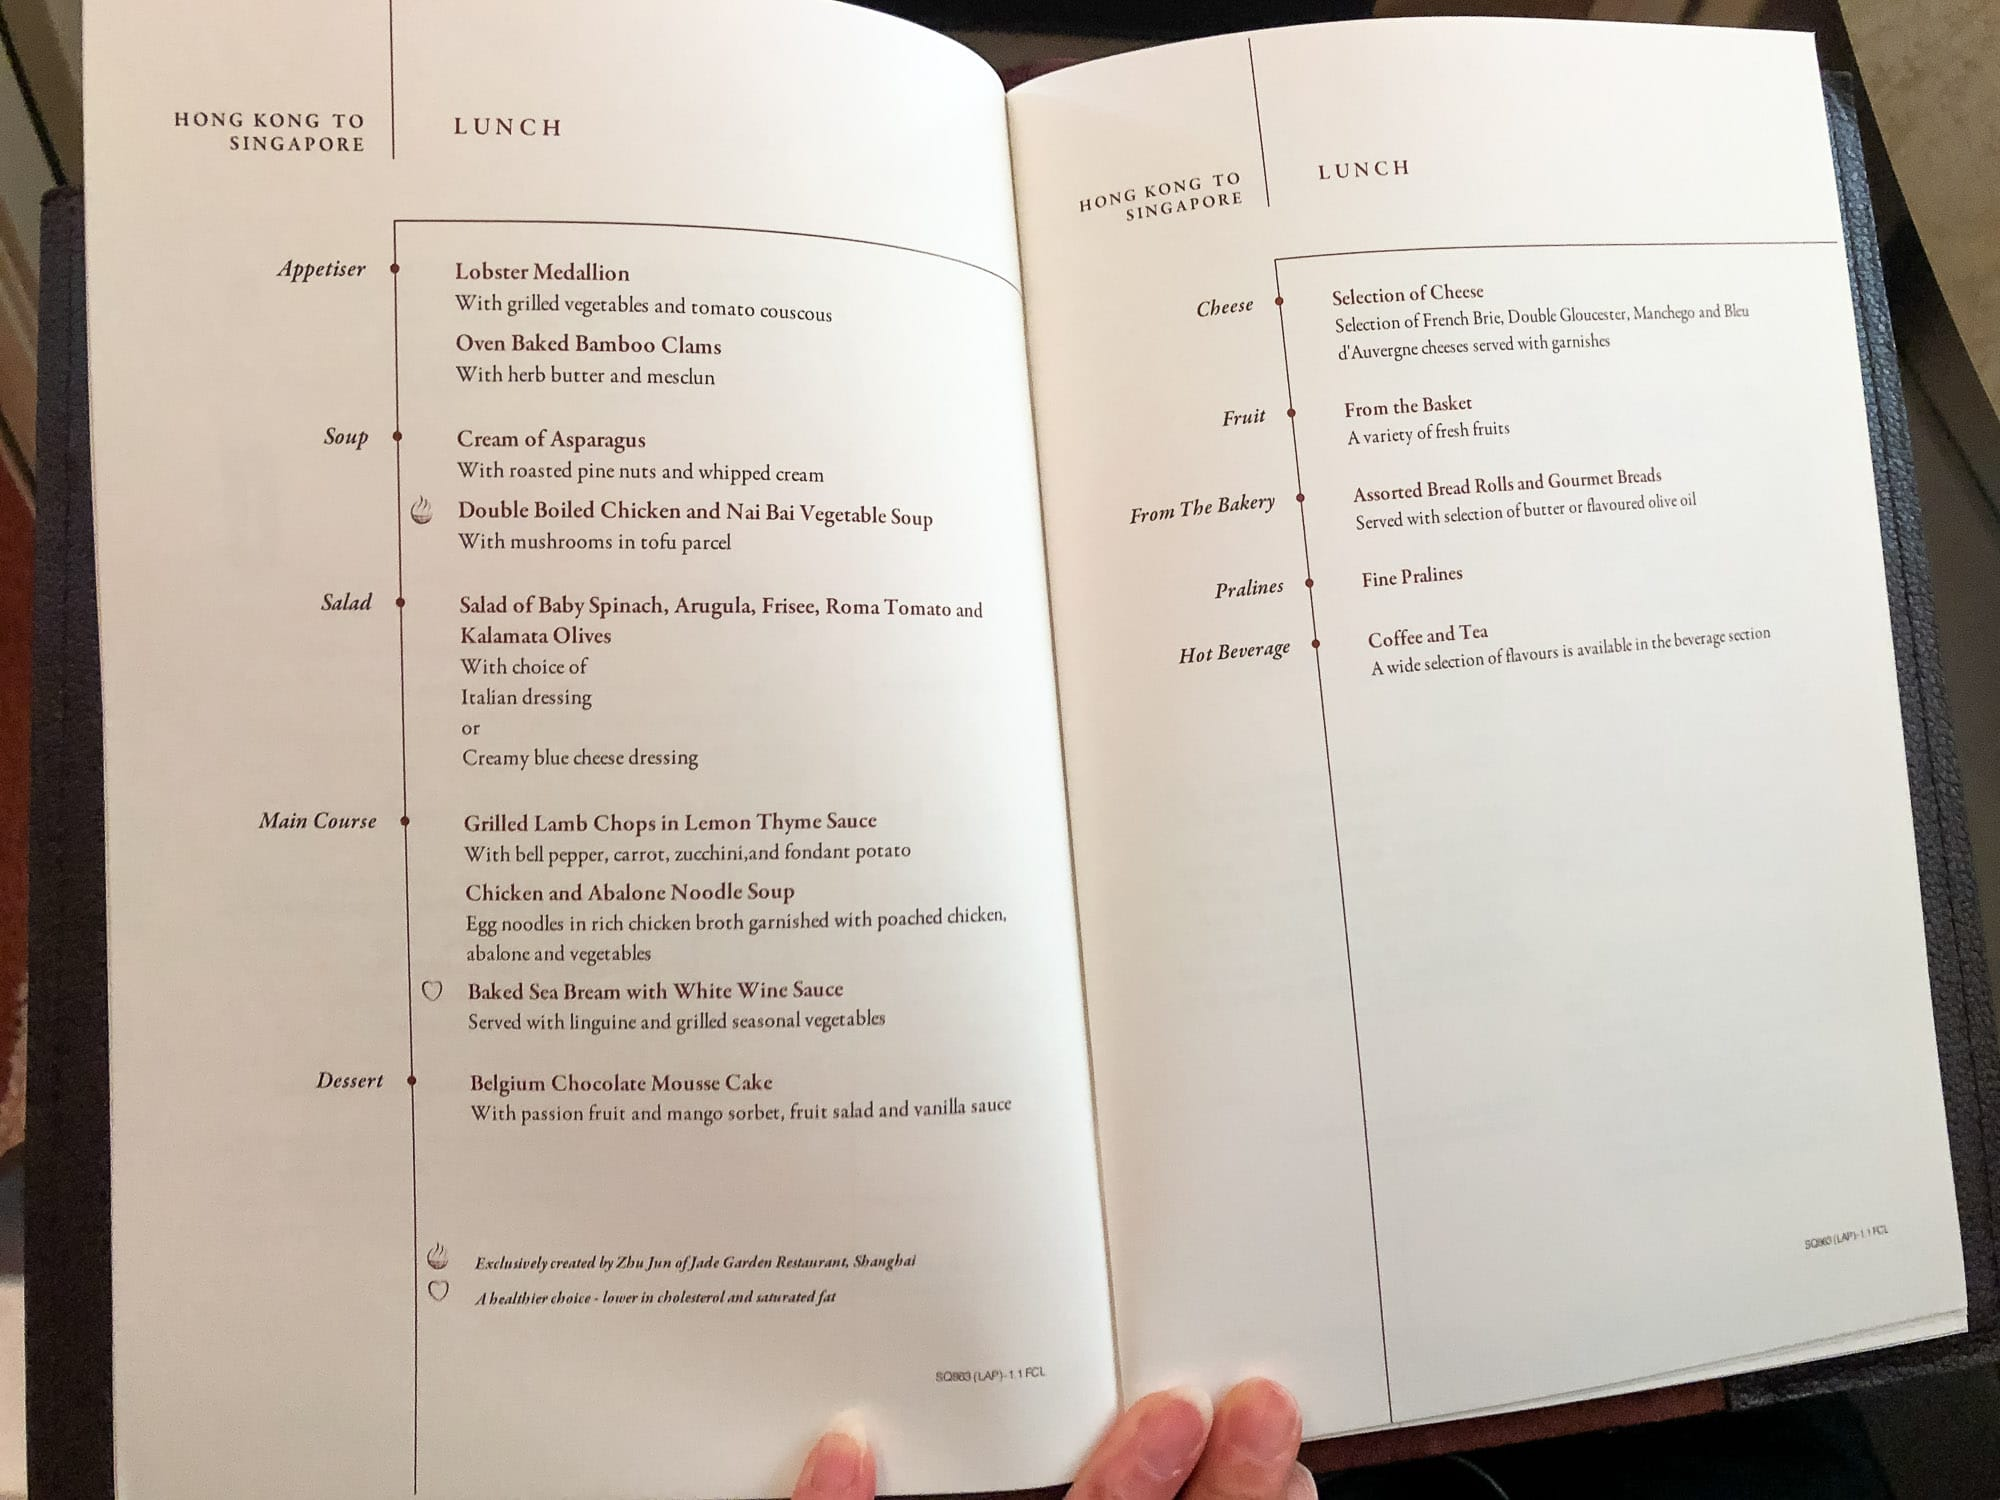 Lunch menu on Singapore Airlines in first class suites